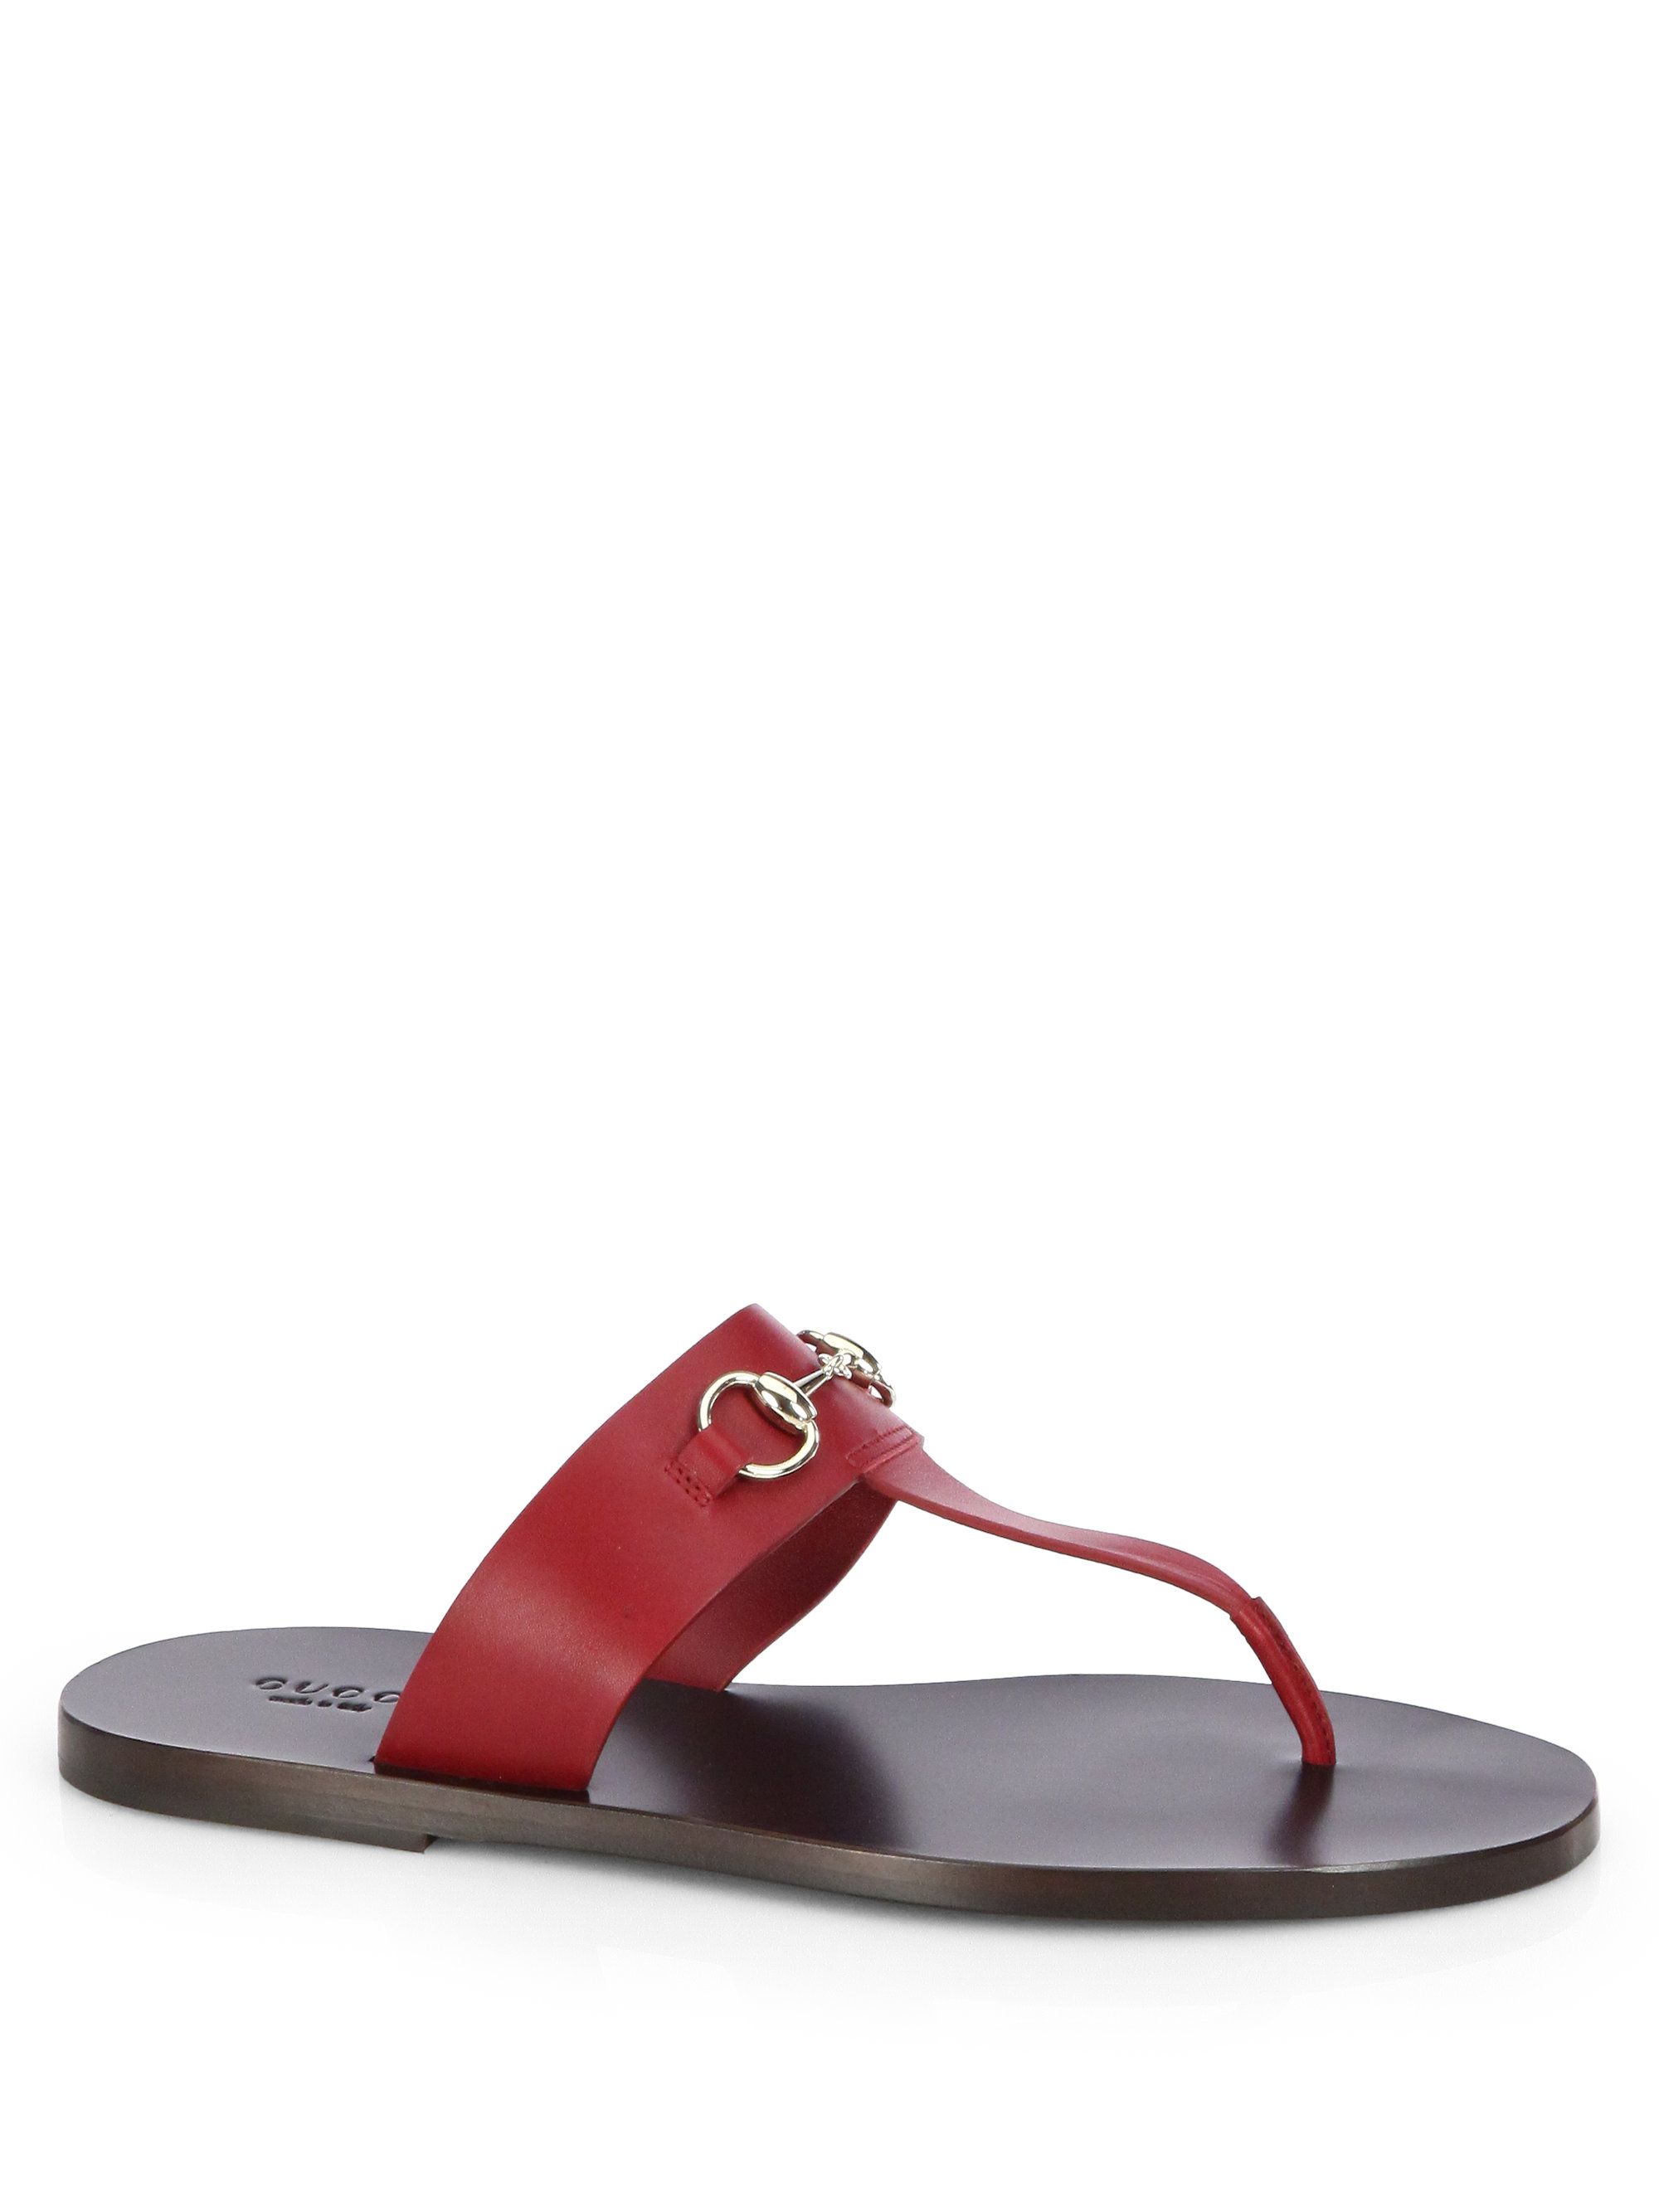 4ab60aeaa8b7f5 Lyst - Gucci Marcy Leather Horsebit Thong Sandals in Red